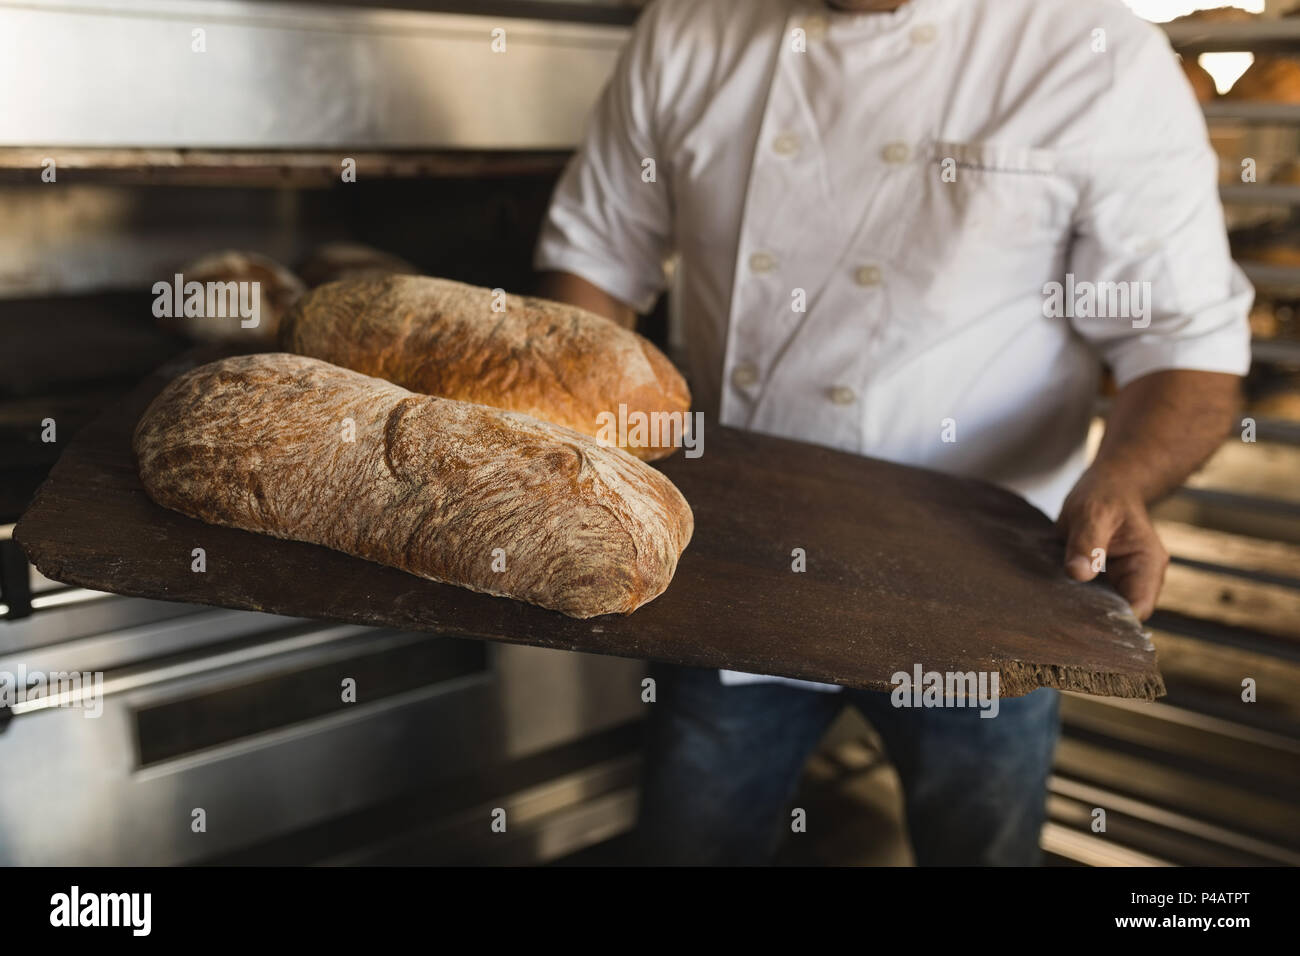 Male baker holding baked bread in bakery shop - Stock Image